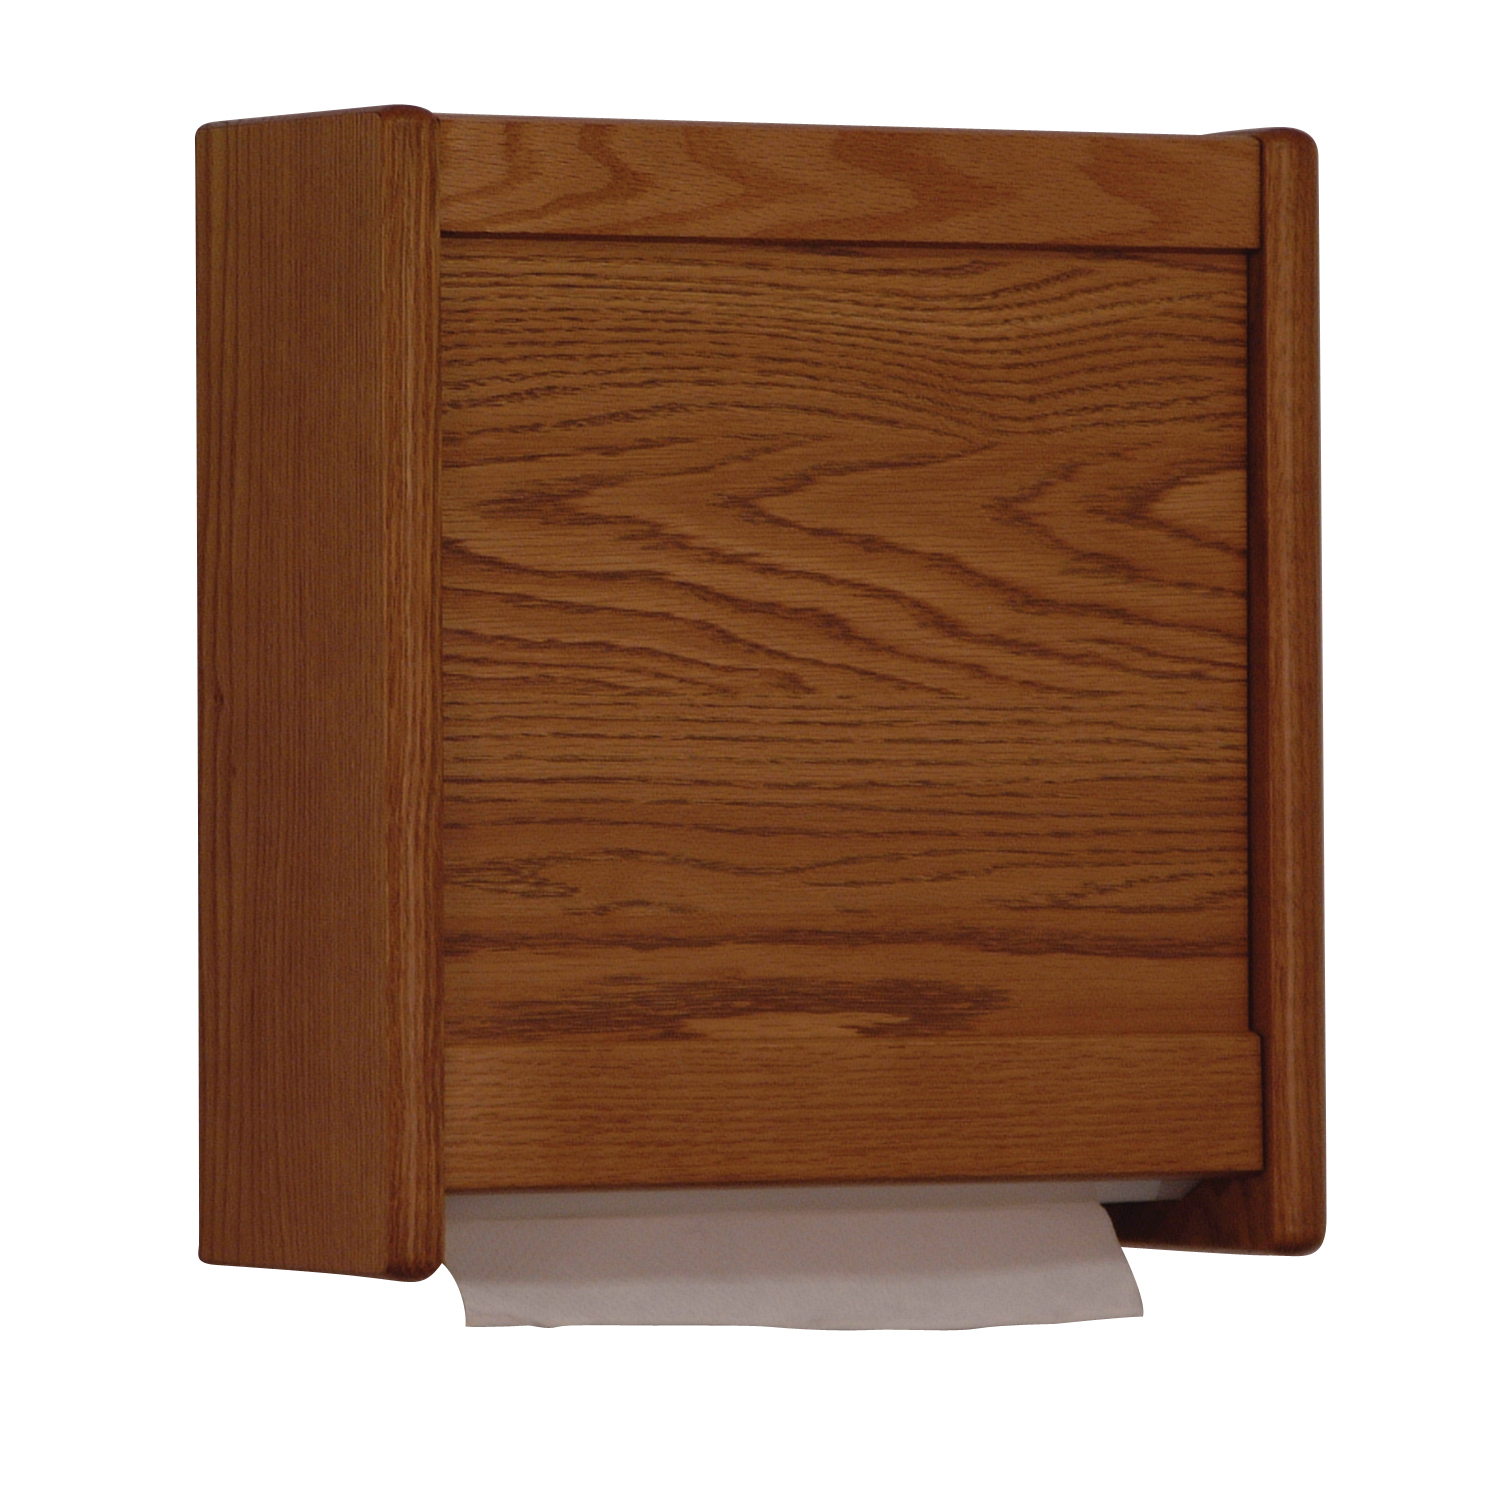 Offex C-Fold/Multi-Fold Towel Dispenser Medium Oak